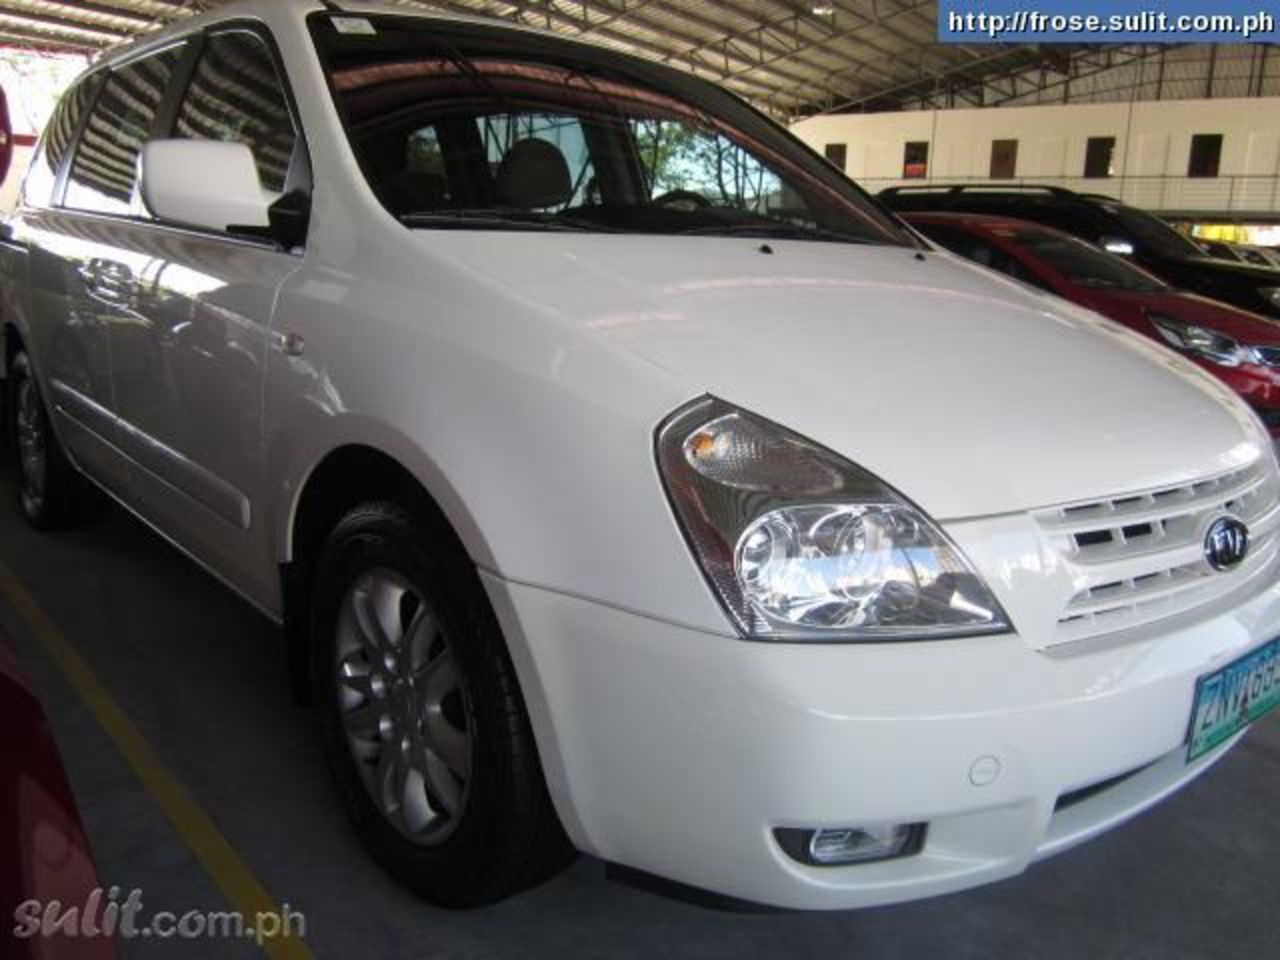 Kia Carnival LX 2008 a/t diesel color white - Philippines - 7833332